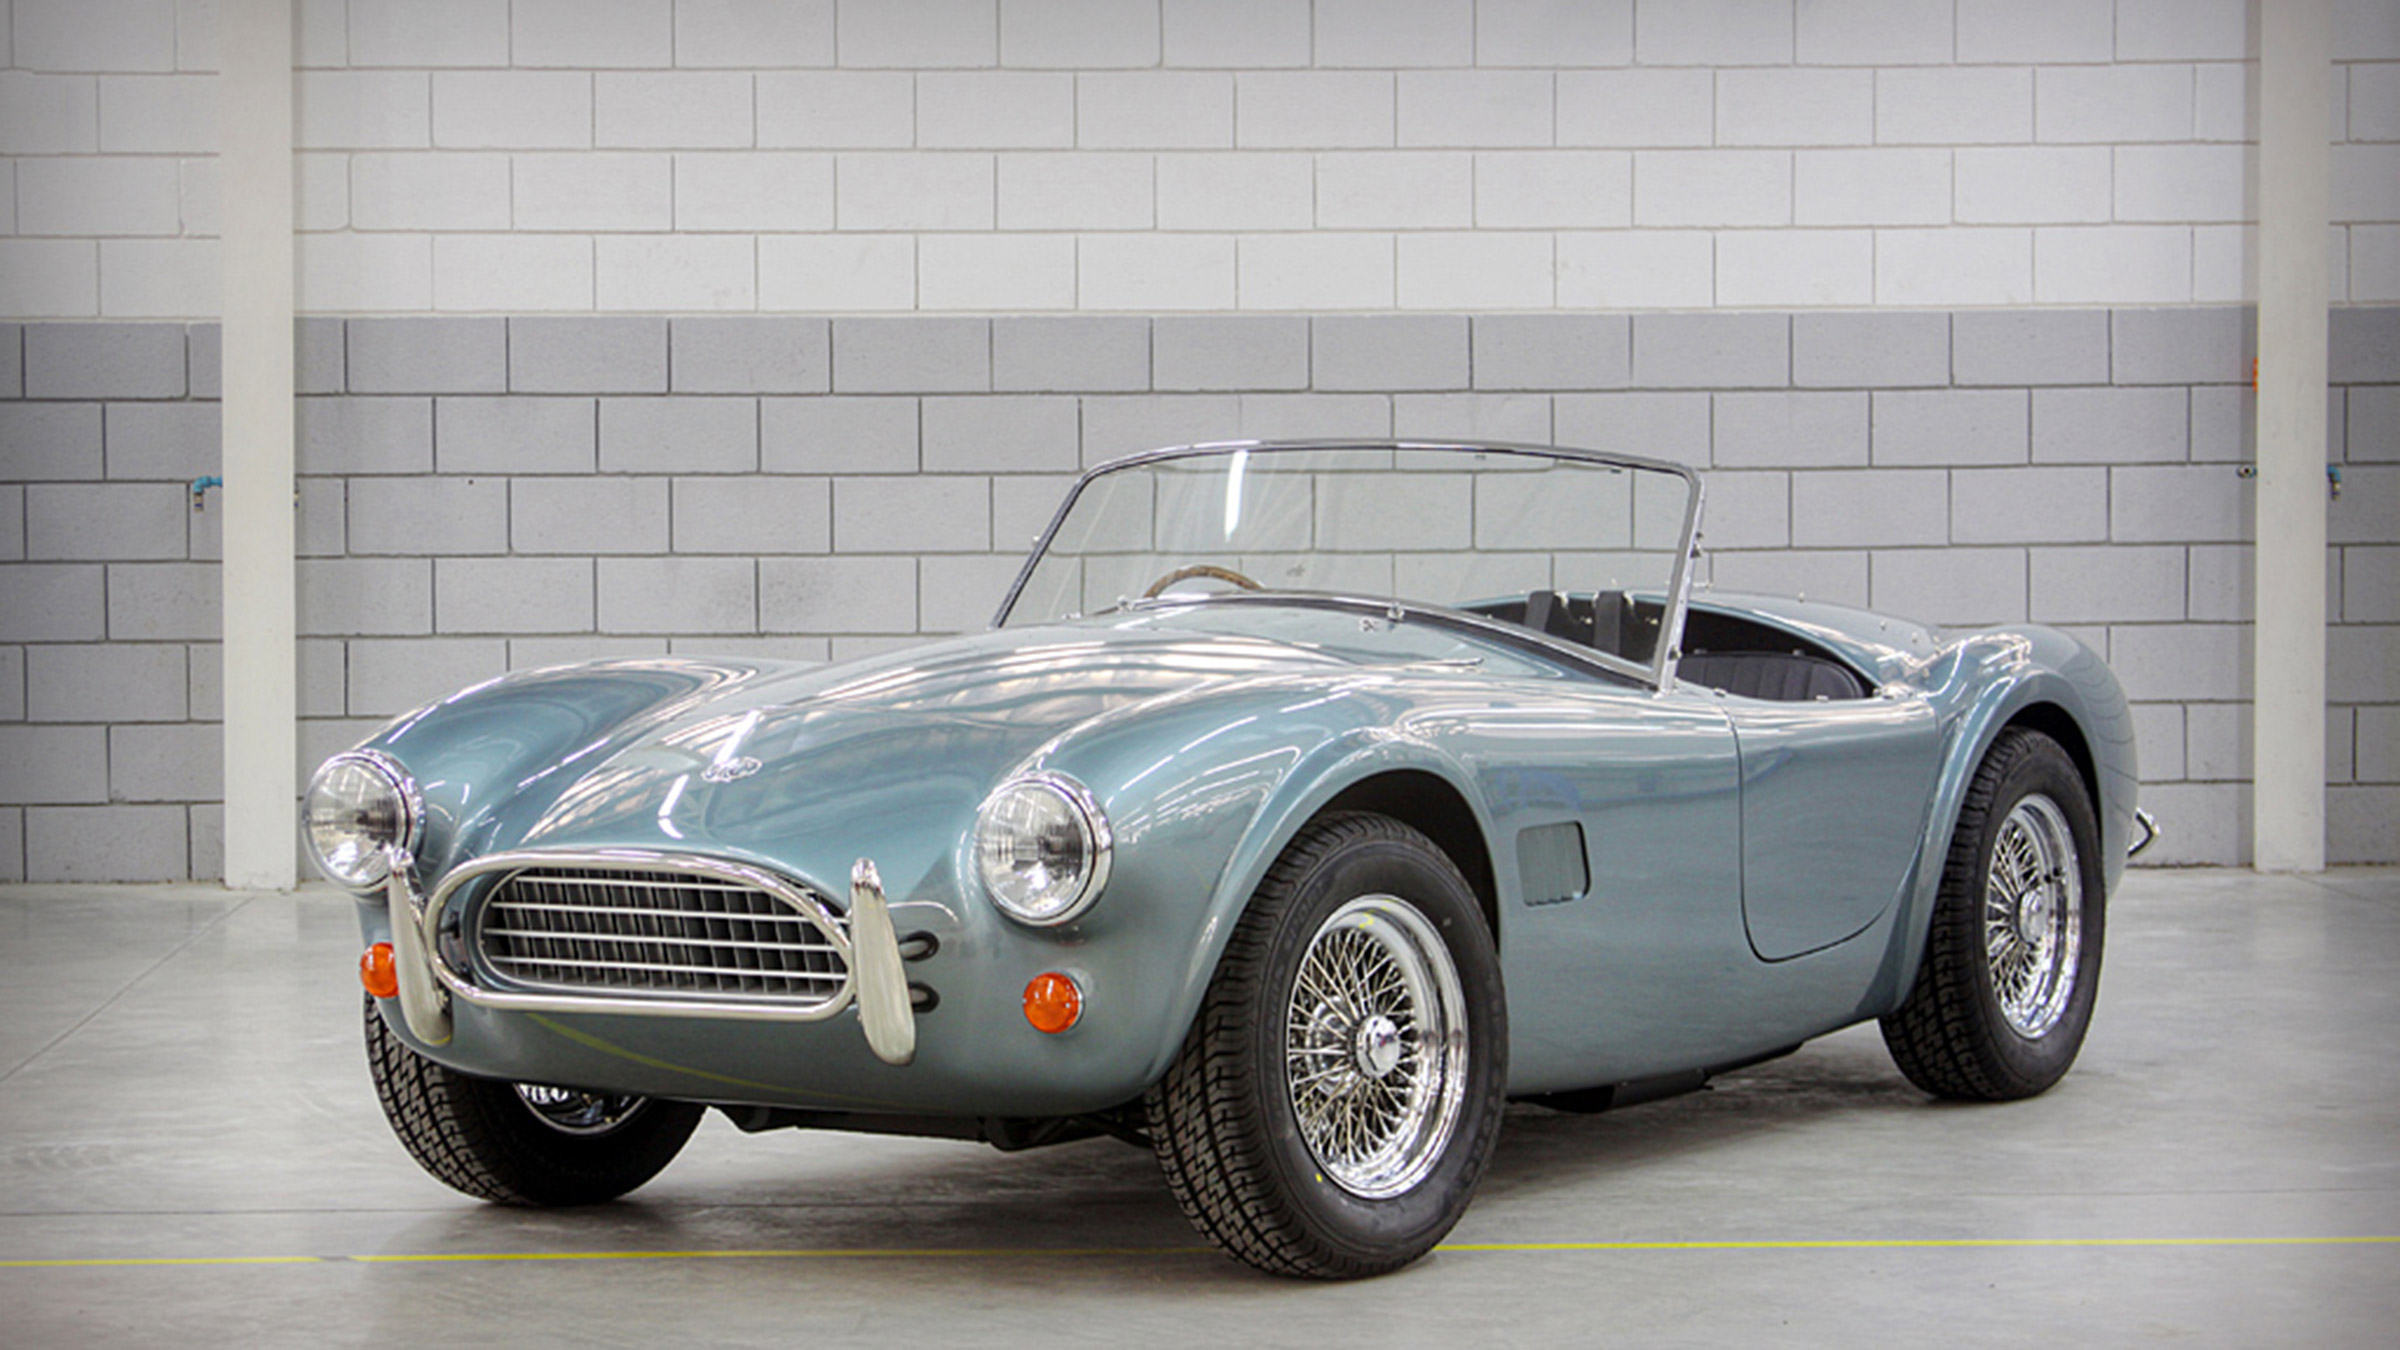 AC Cobra 289s recharged with electric conversion